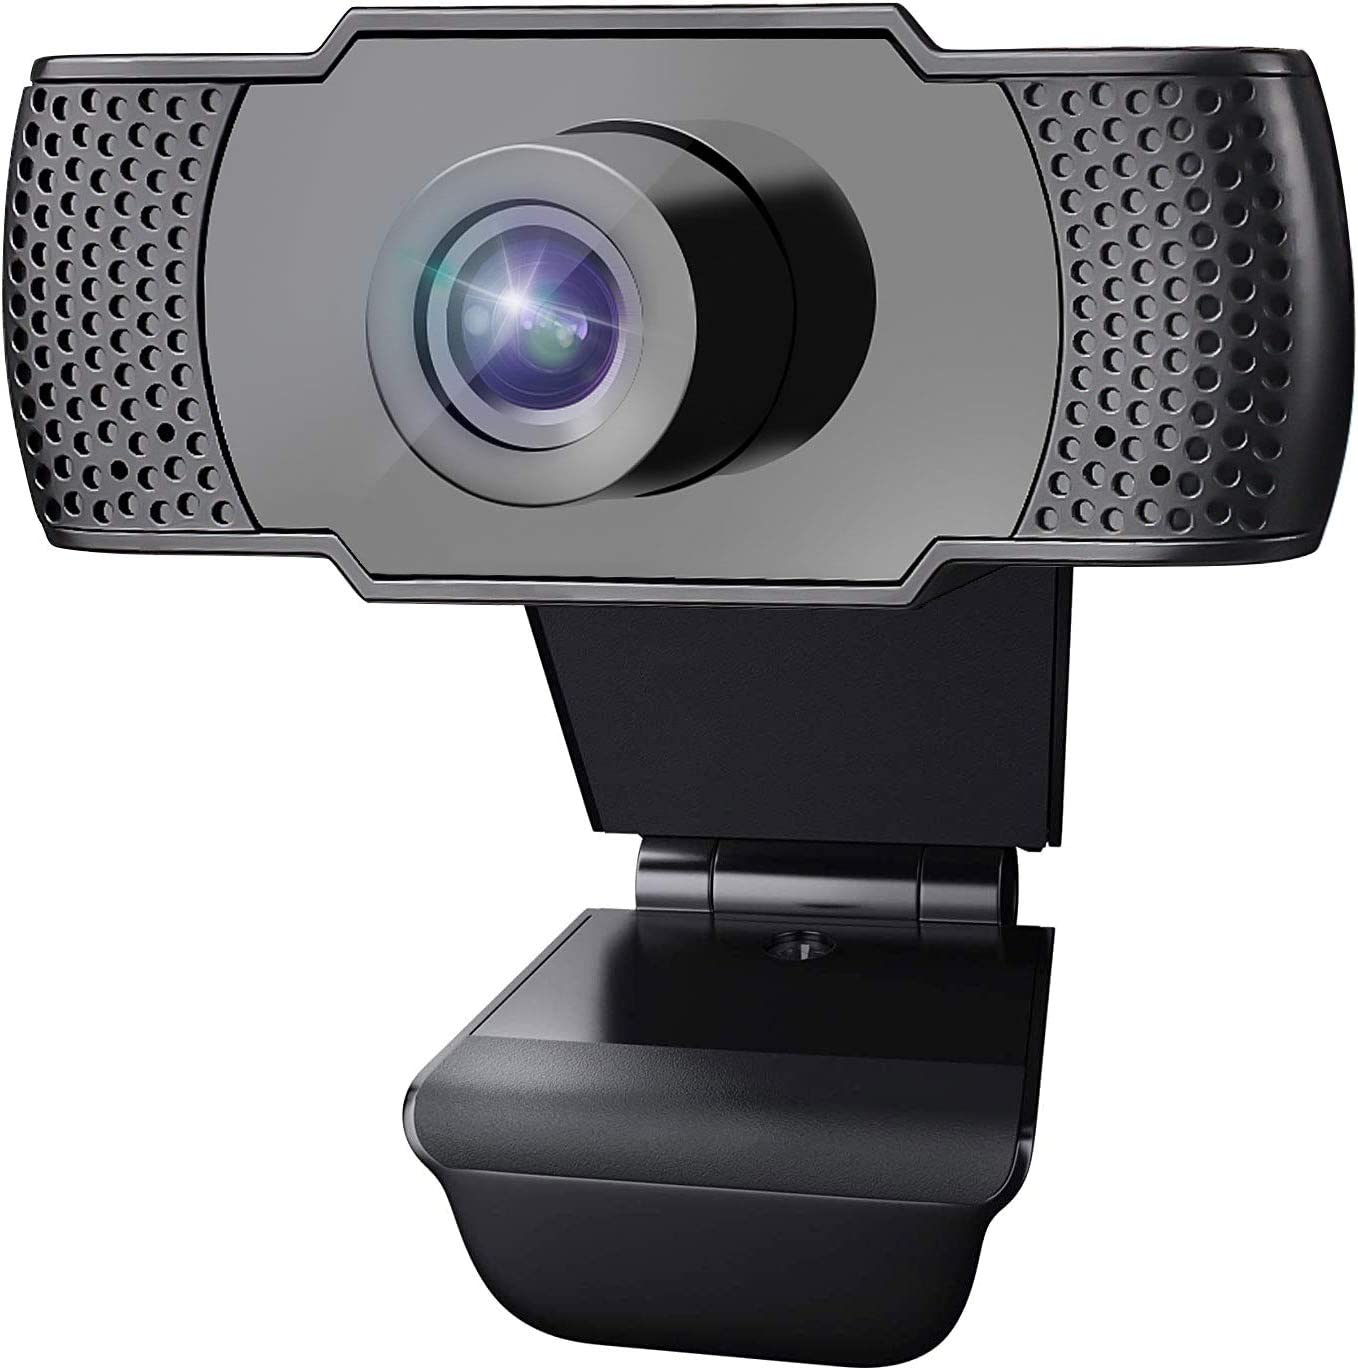 1080P Webcam with Microphone, HD Webcam Desktop Laptop Computer Camera, Plug and Play USB 2.0 Webcam for Live Streaming, Conference, Gaming, Online Classes